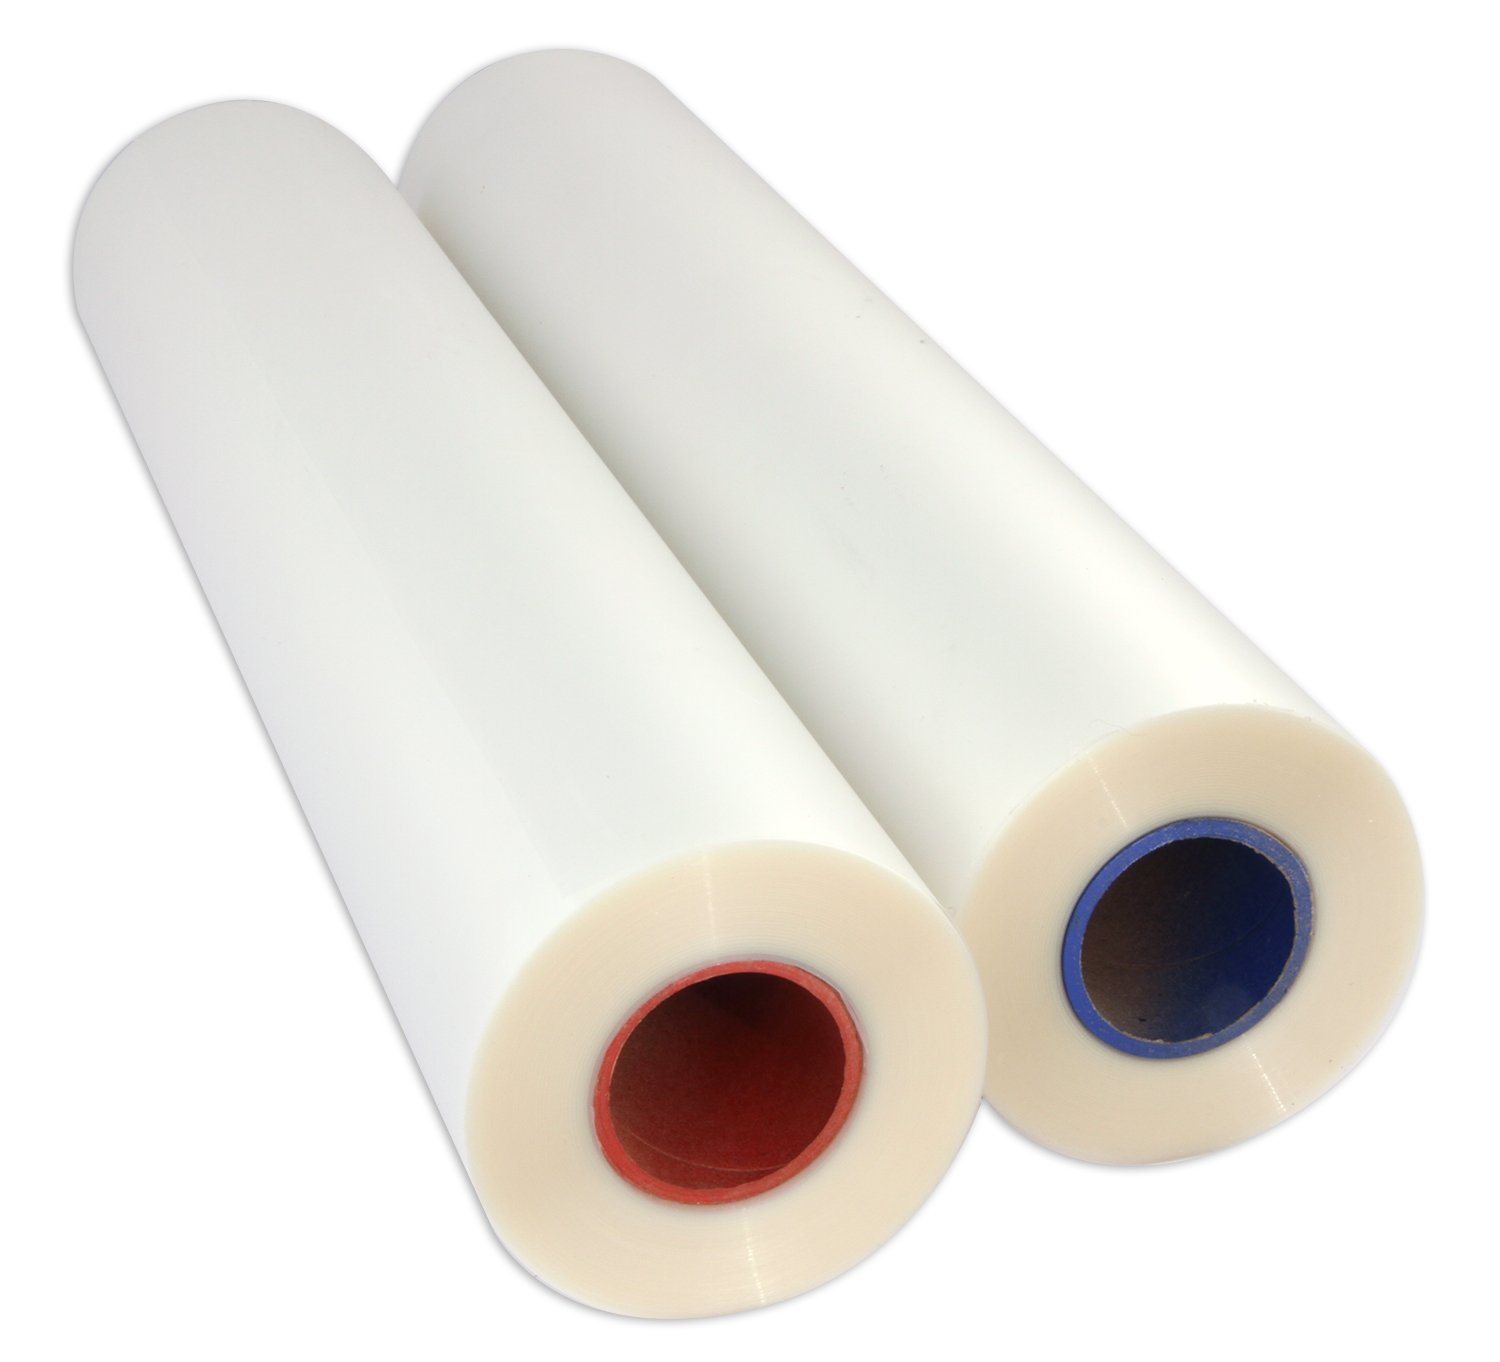 USI Premium Thermal Low-Melt EVA Roll Laminating Film, 2.25 Inch Core, 5 Mil, Wide Format, 40 Inches x 200 Feet, Clear Gloss, 2 Rolls